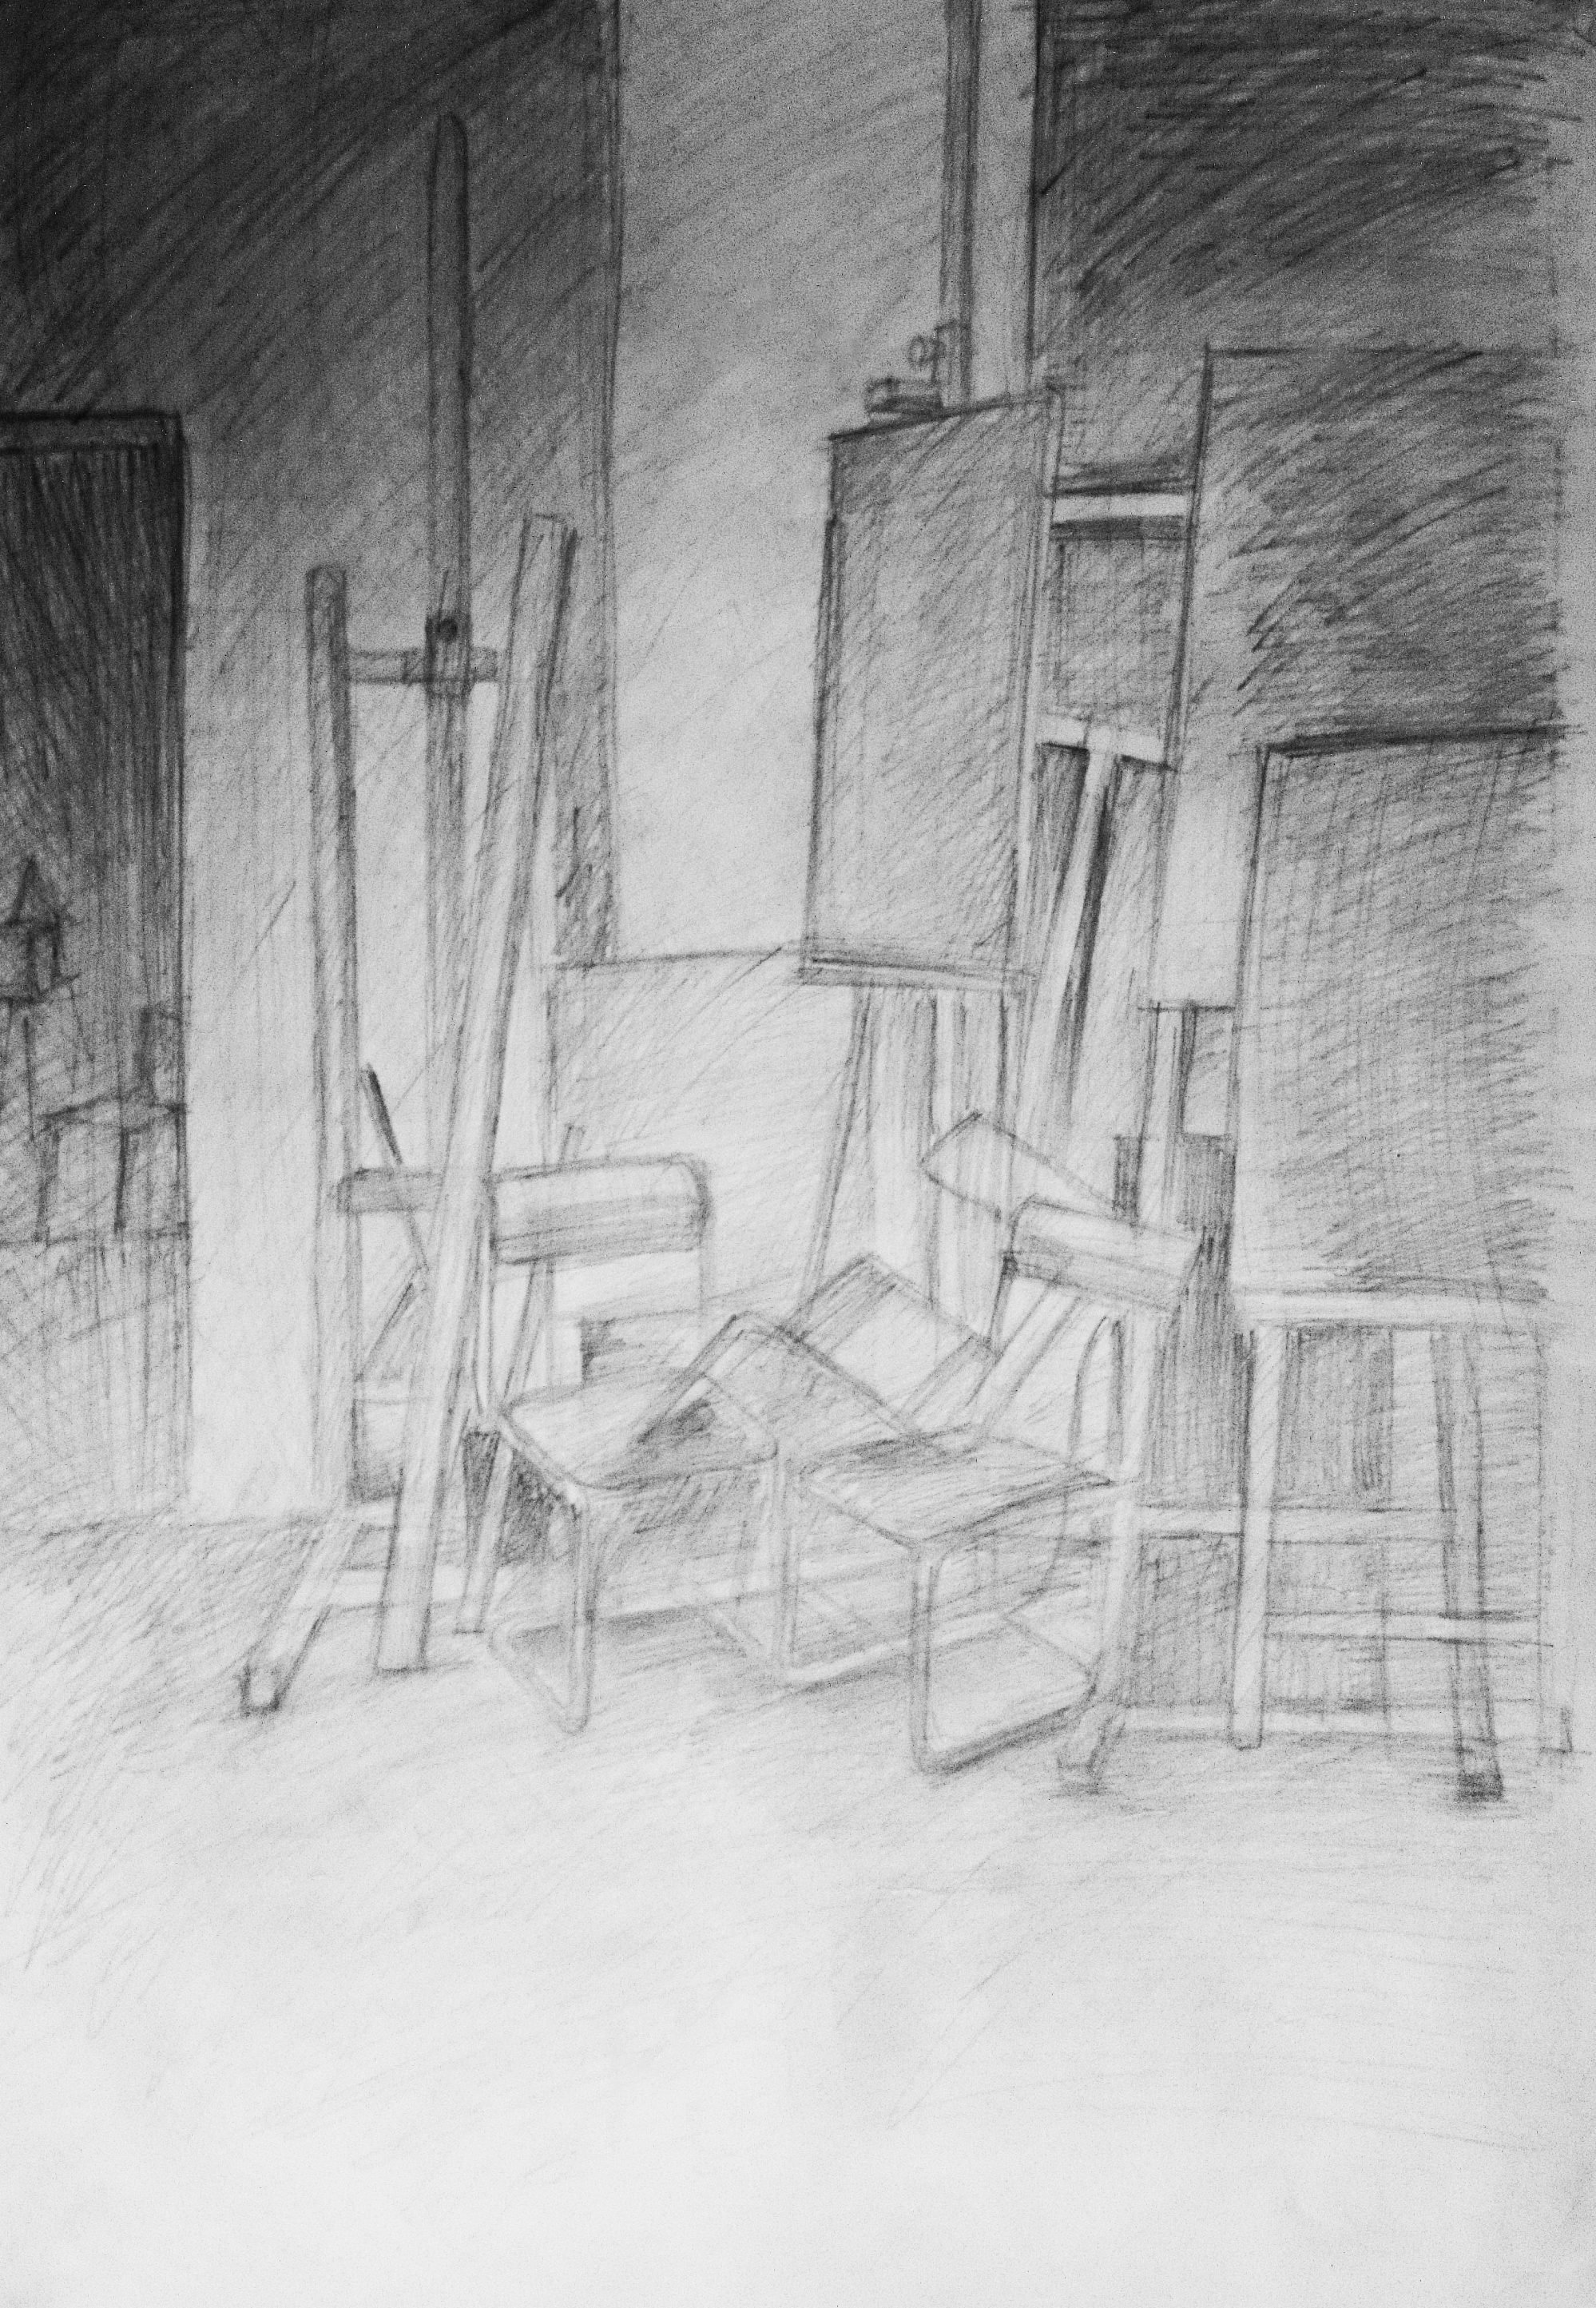 Sketchy composition: chairs